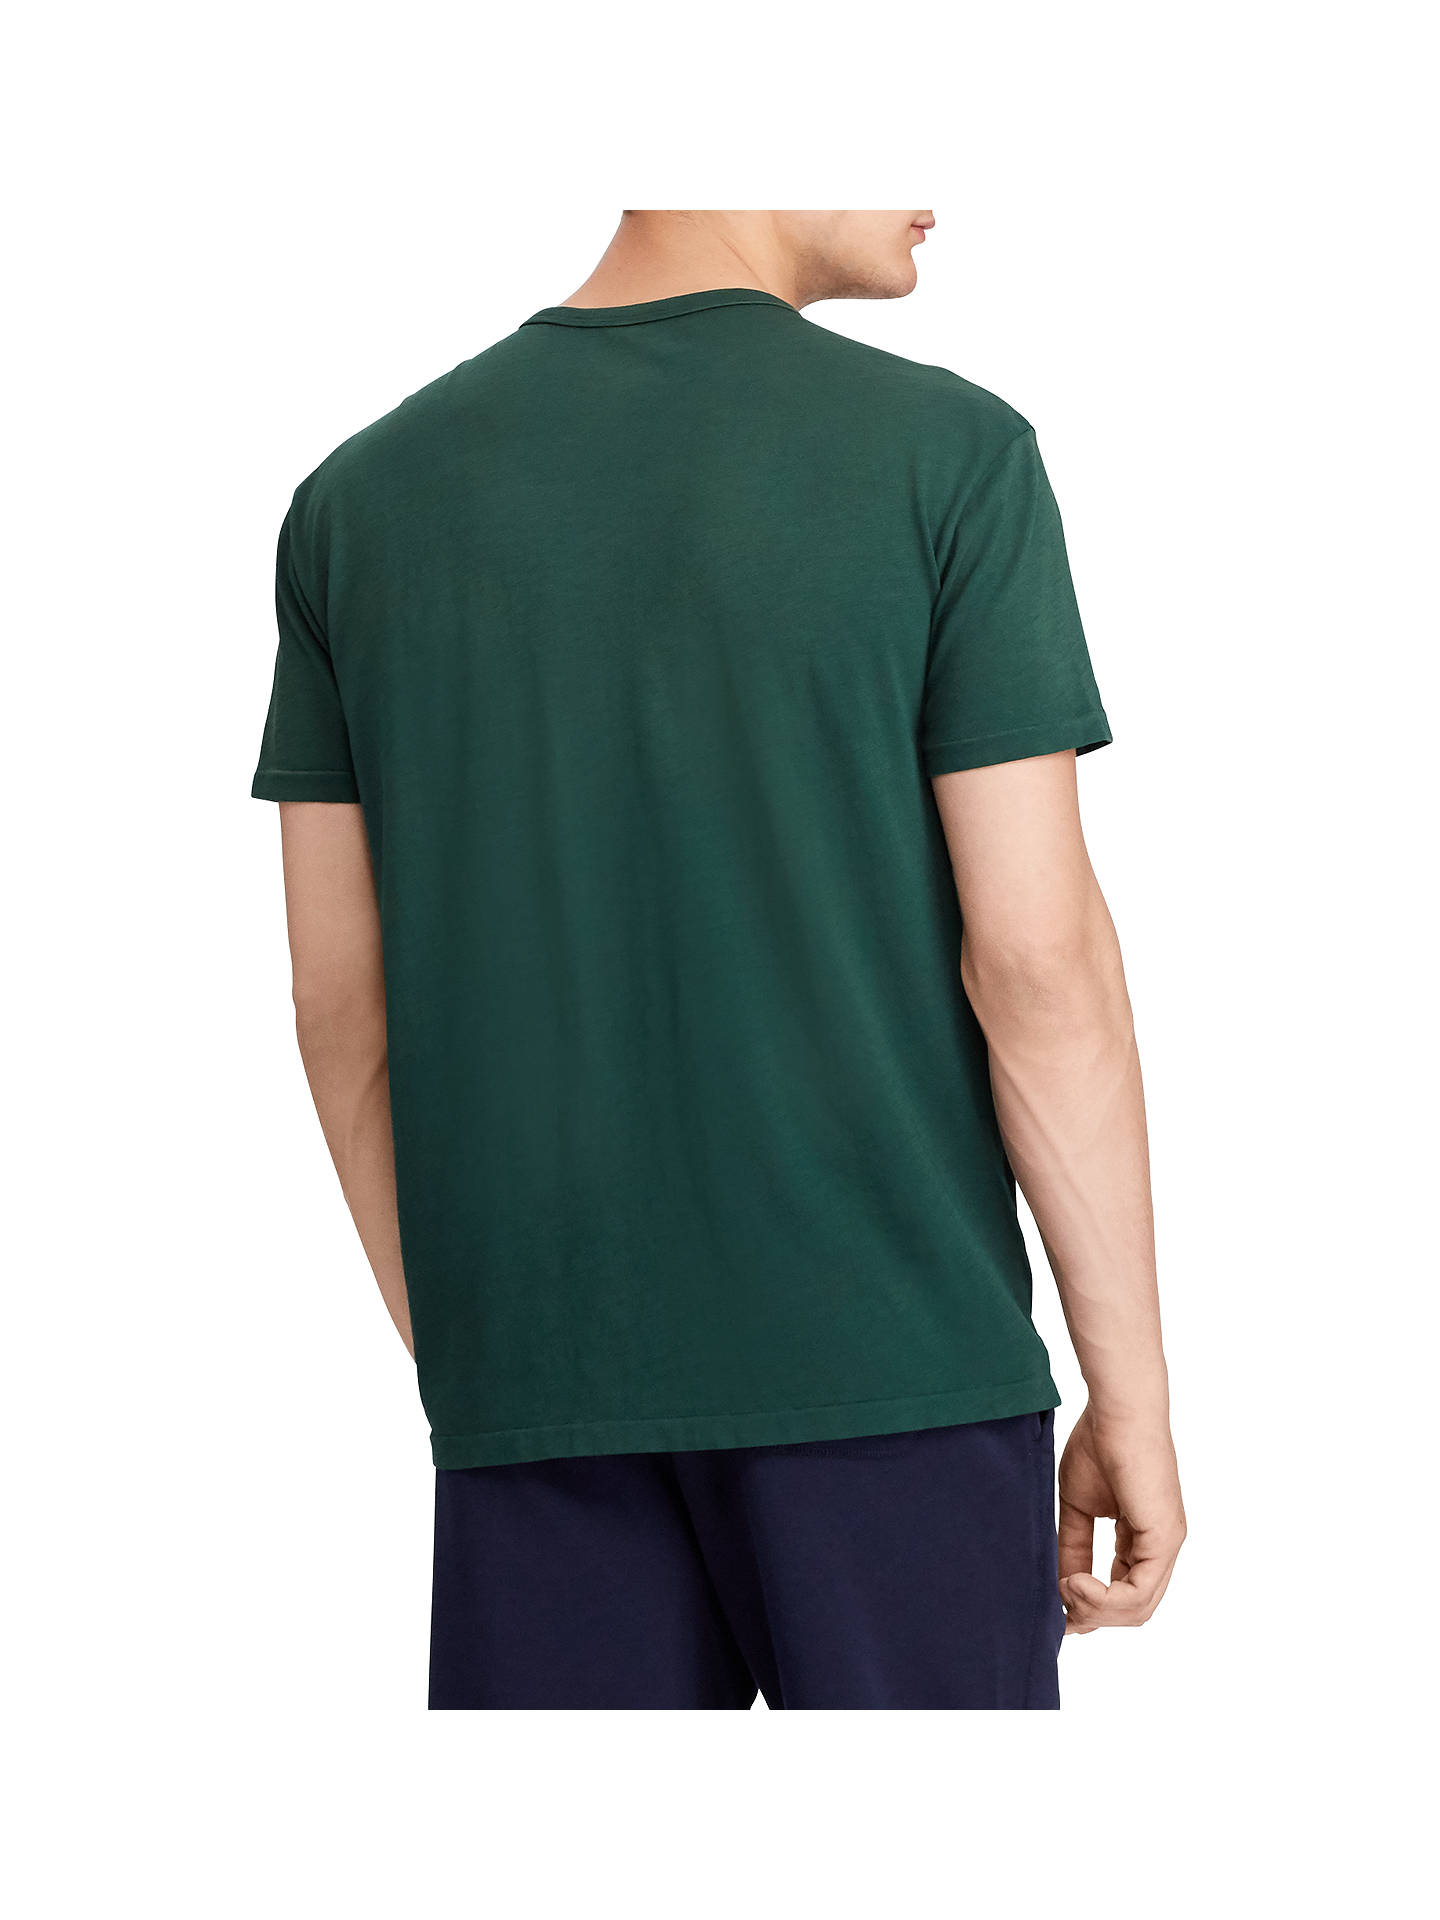 Buy Polo Ralph Lauren Short Sleeve Graphic T-Shirt, College Green, S Online at johnlewis.com